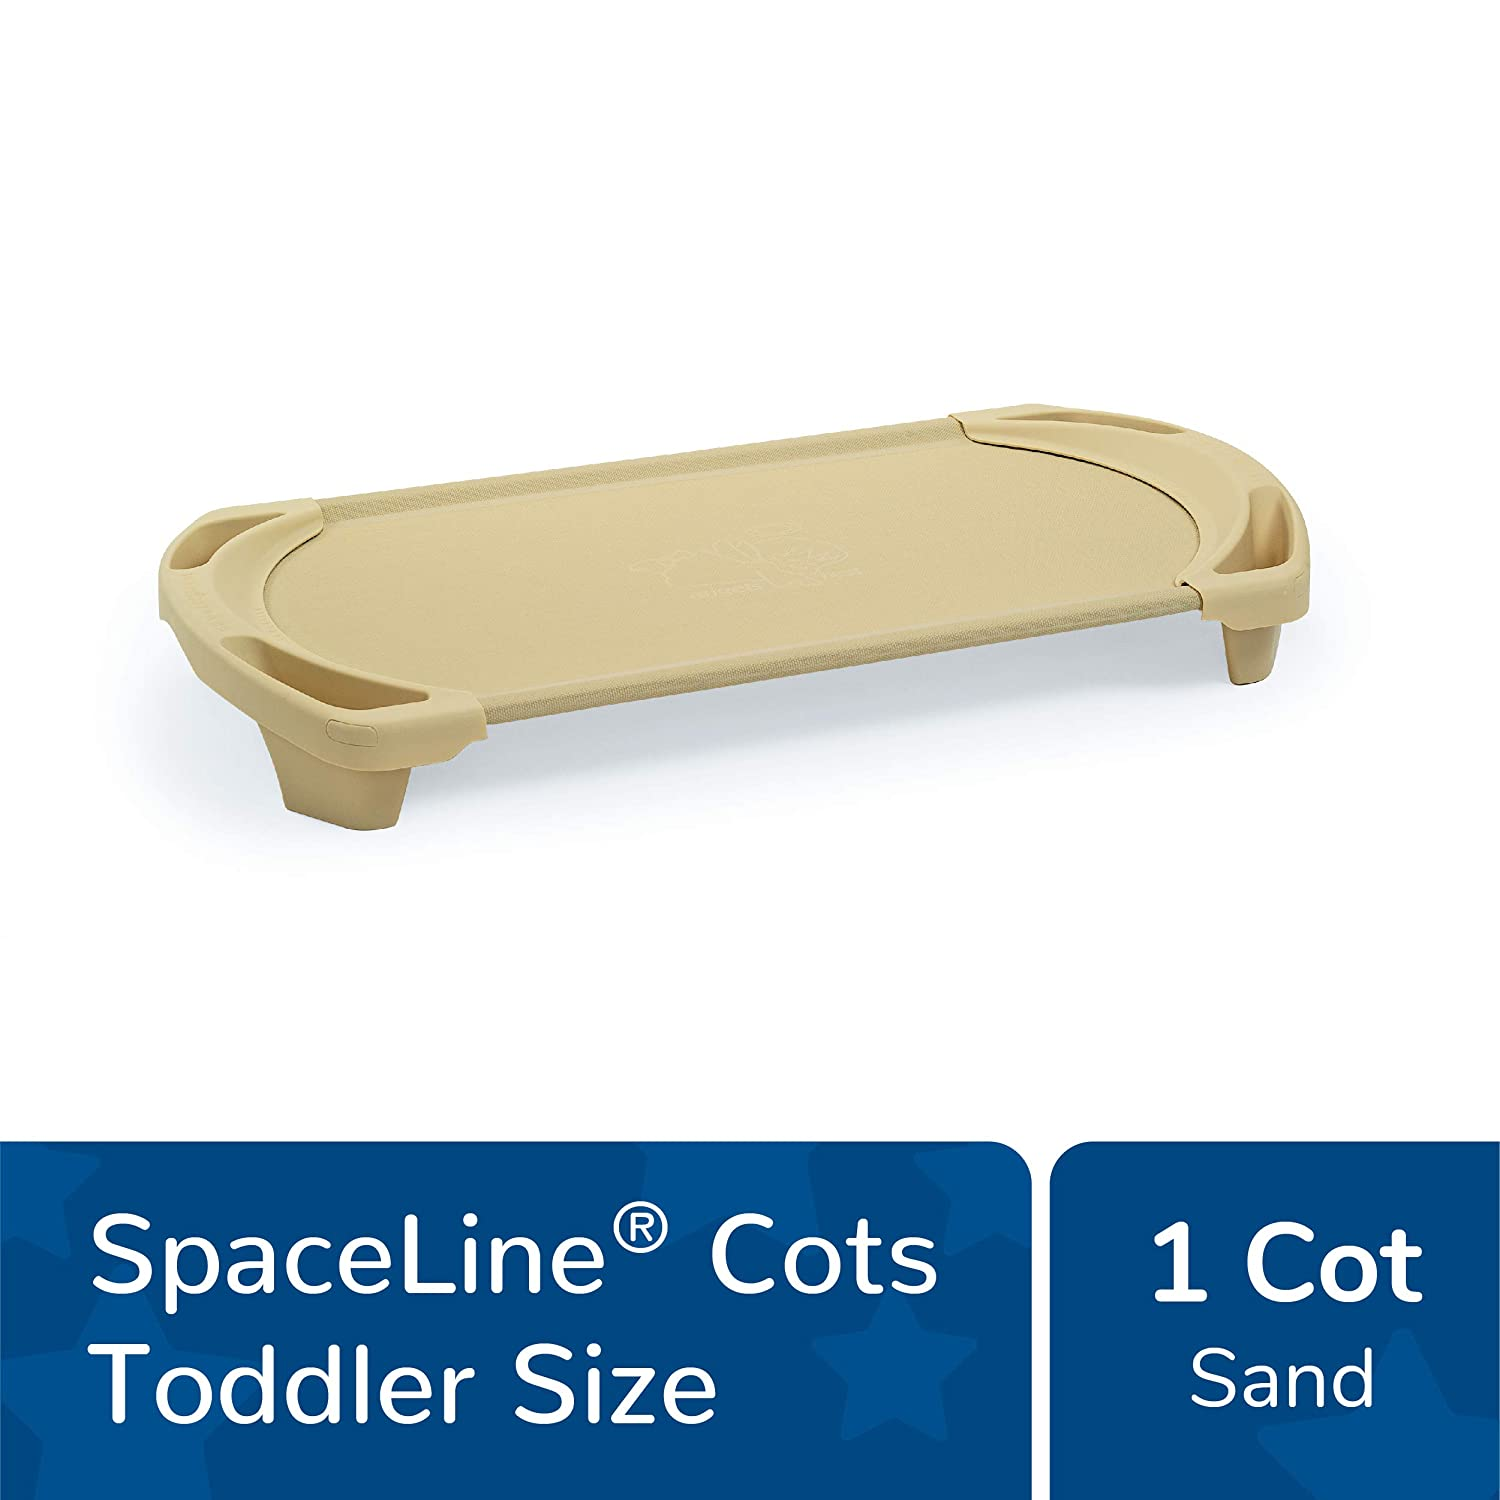 22 Length 9.5 Width 42.5 Height Blue Pack of 4 Toddler Angeles AFB5736AOB Space Line Cot